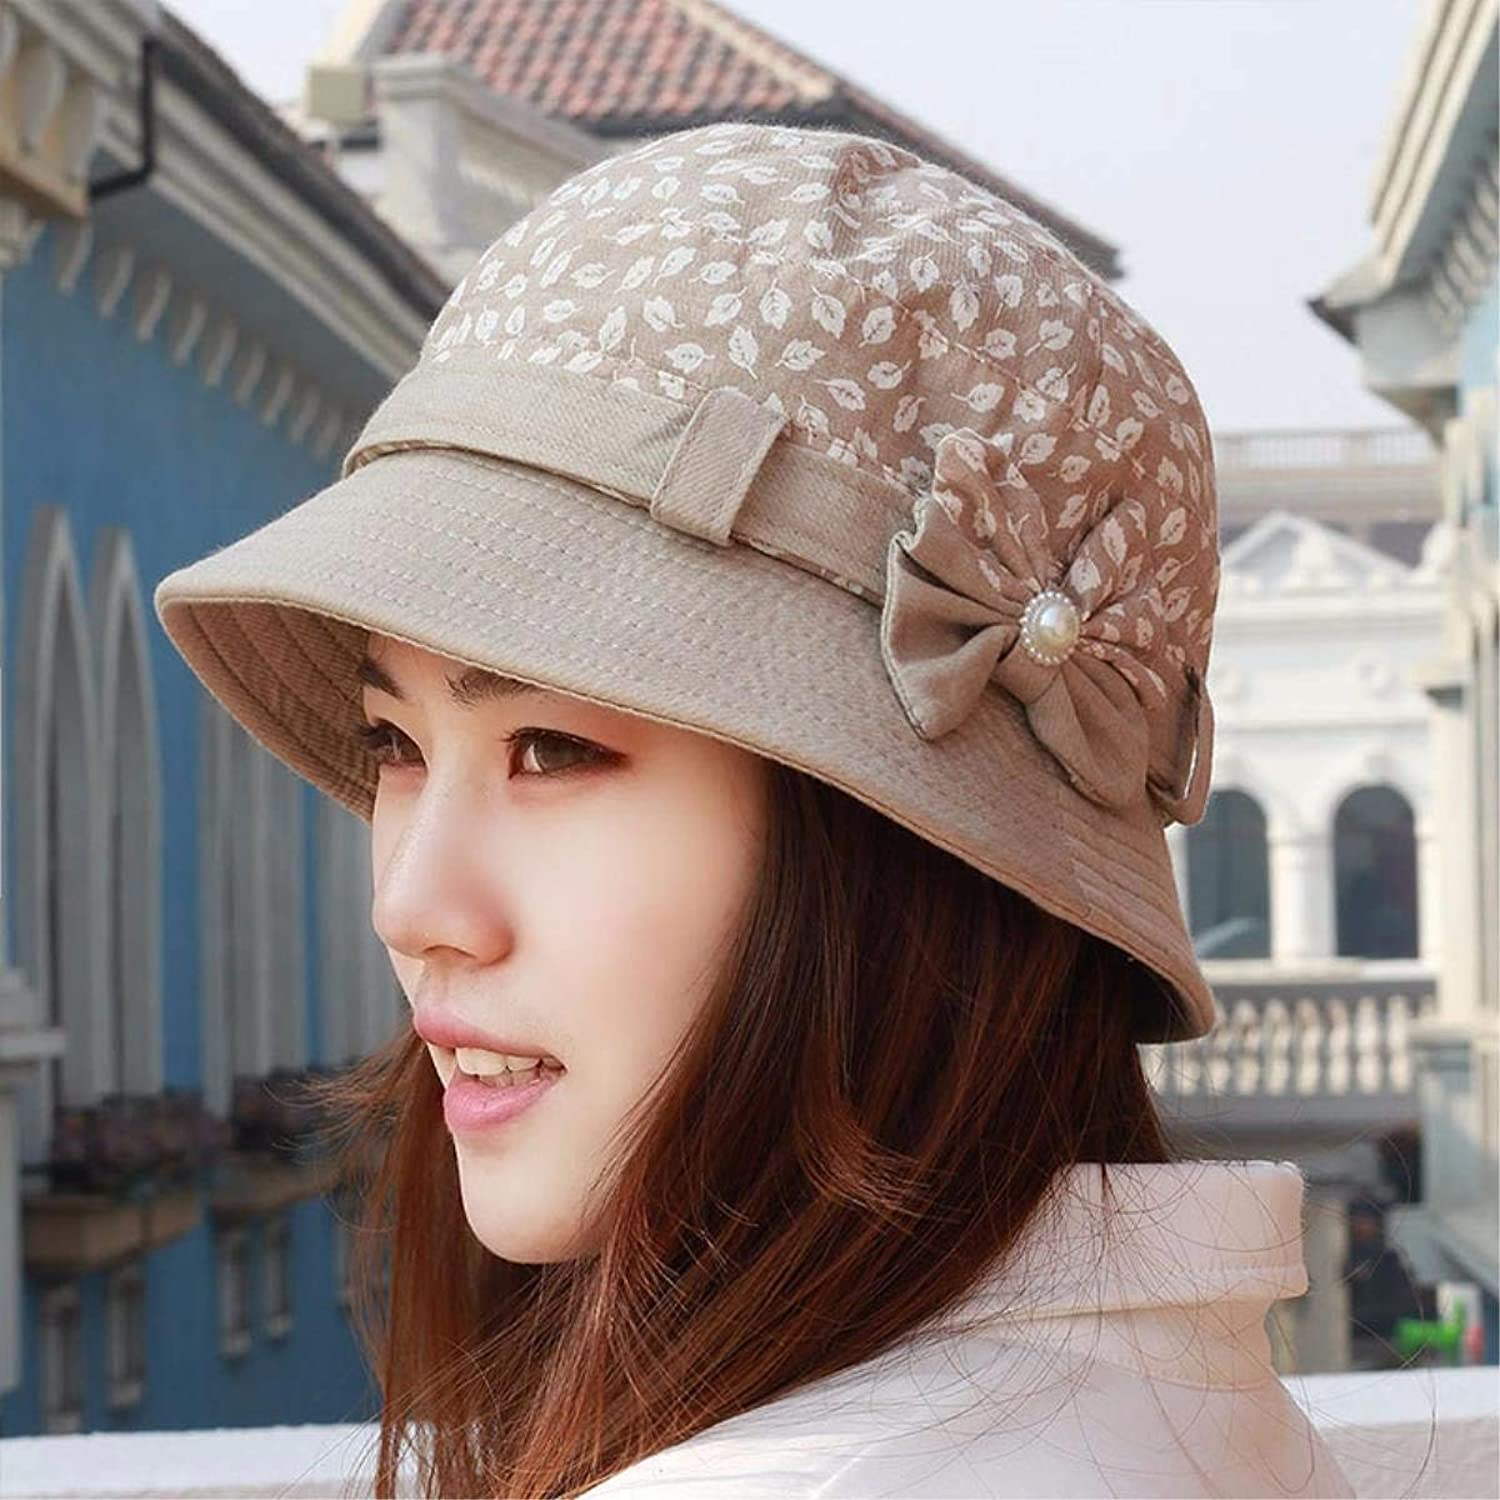 7e6efef73 Beach Hat Hat The Girl Basin Cap The Cap Spring and Summer Fashion ...